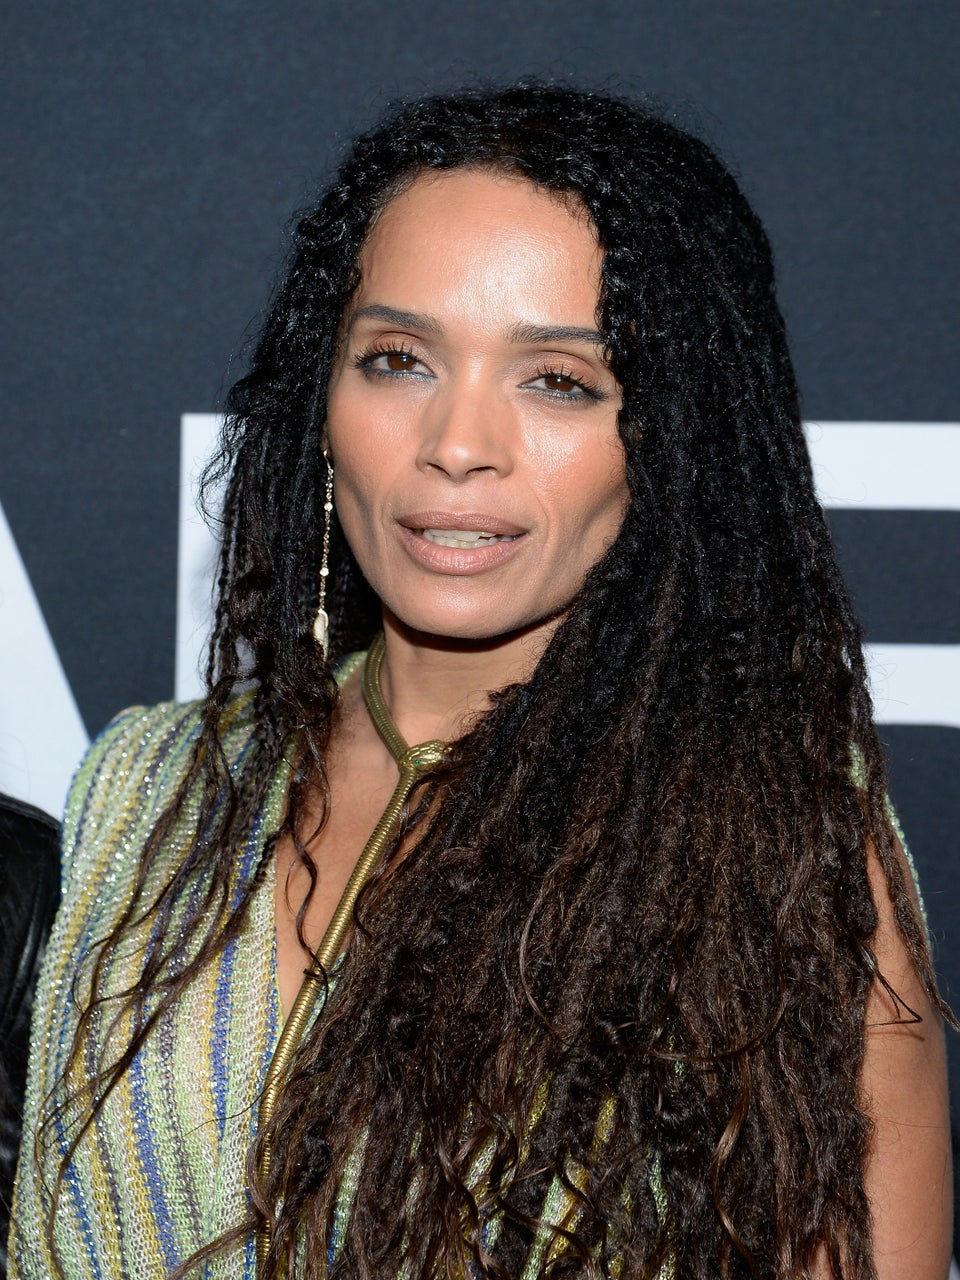 Lisa Bonet Was 'Not Surprised' By Allegations Against Bill Cosby